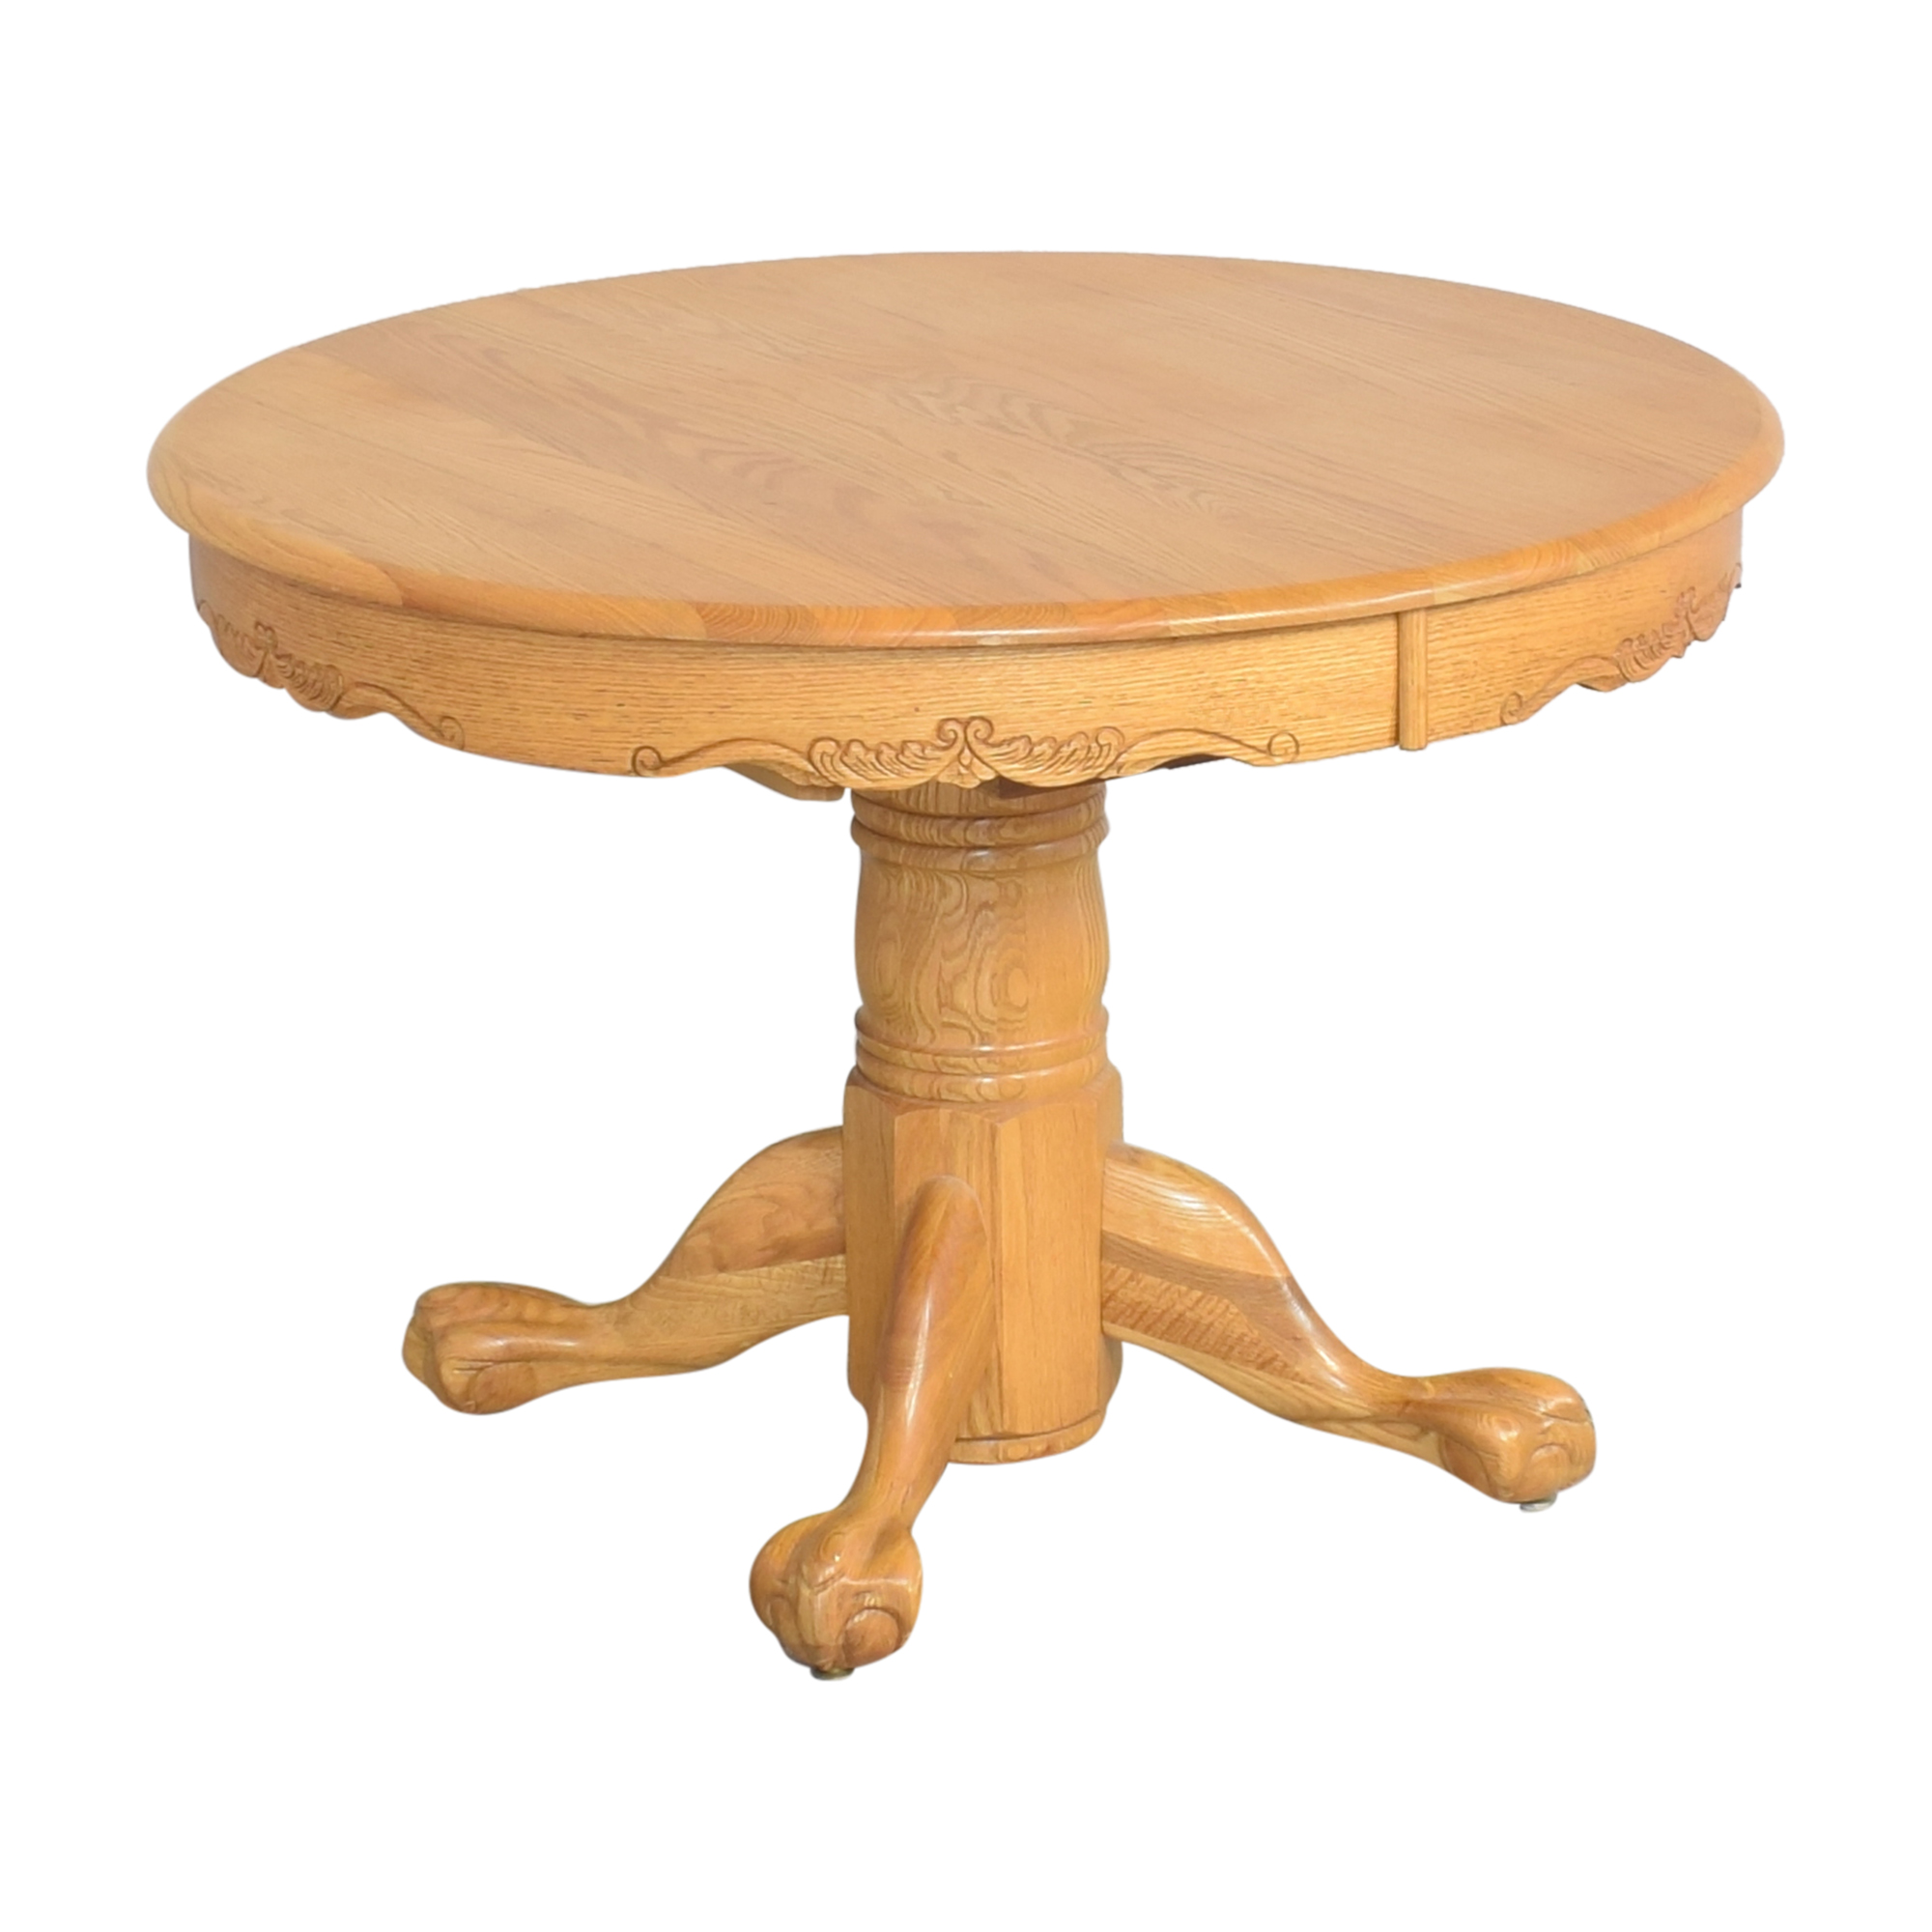 Shin-Lee Shin-Lee Round Extending Kitchen Table dimensions